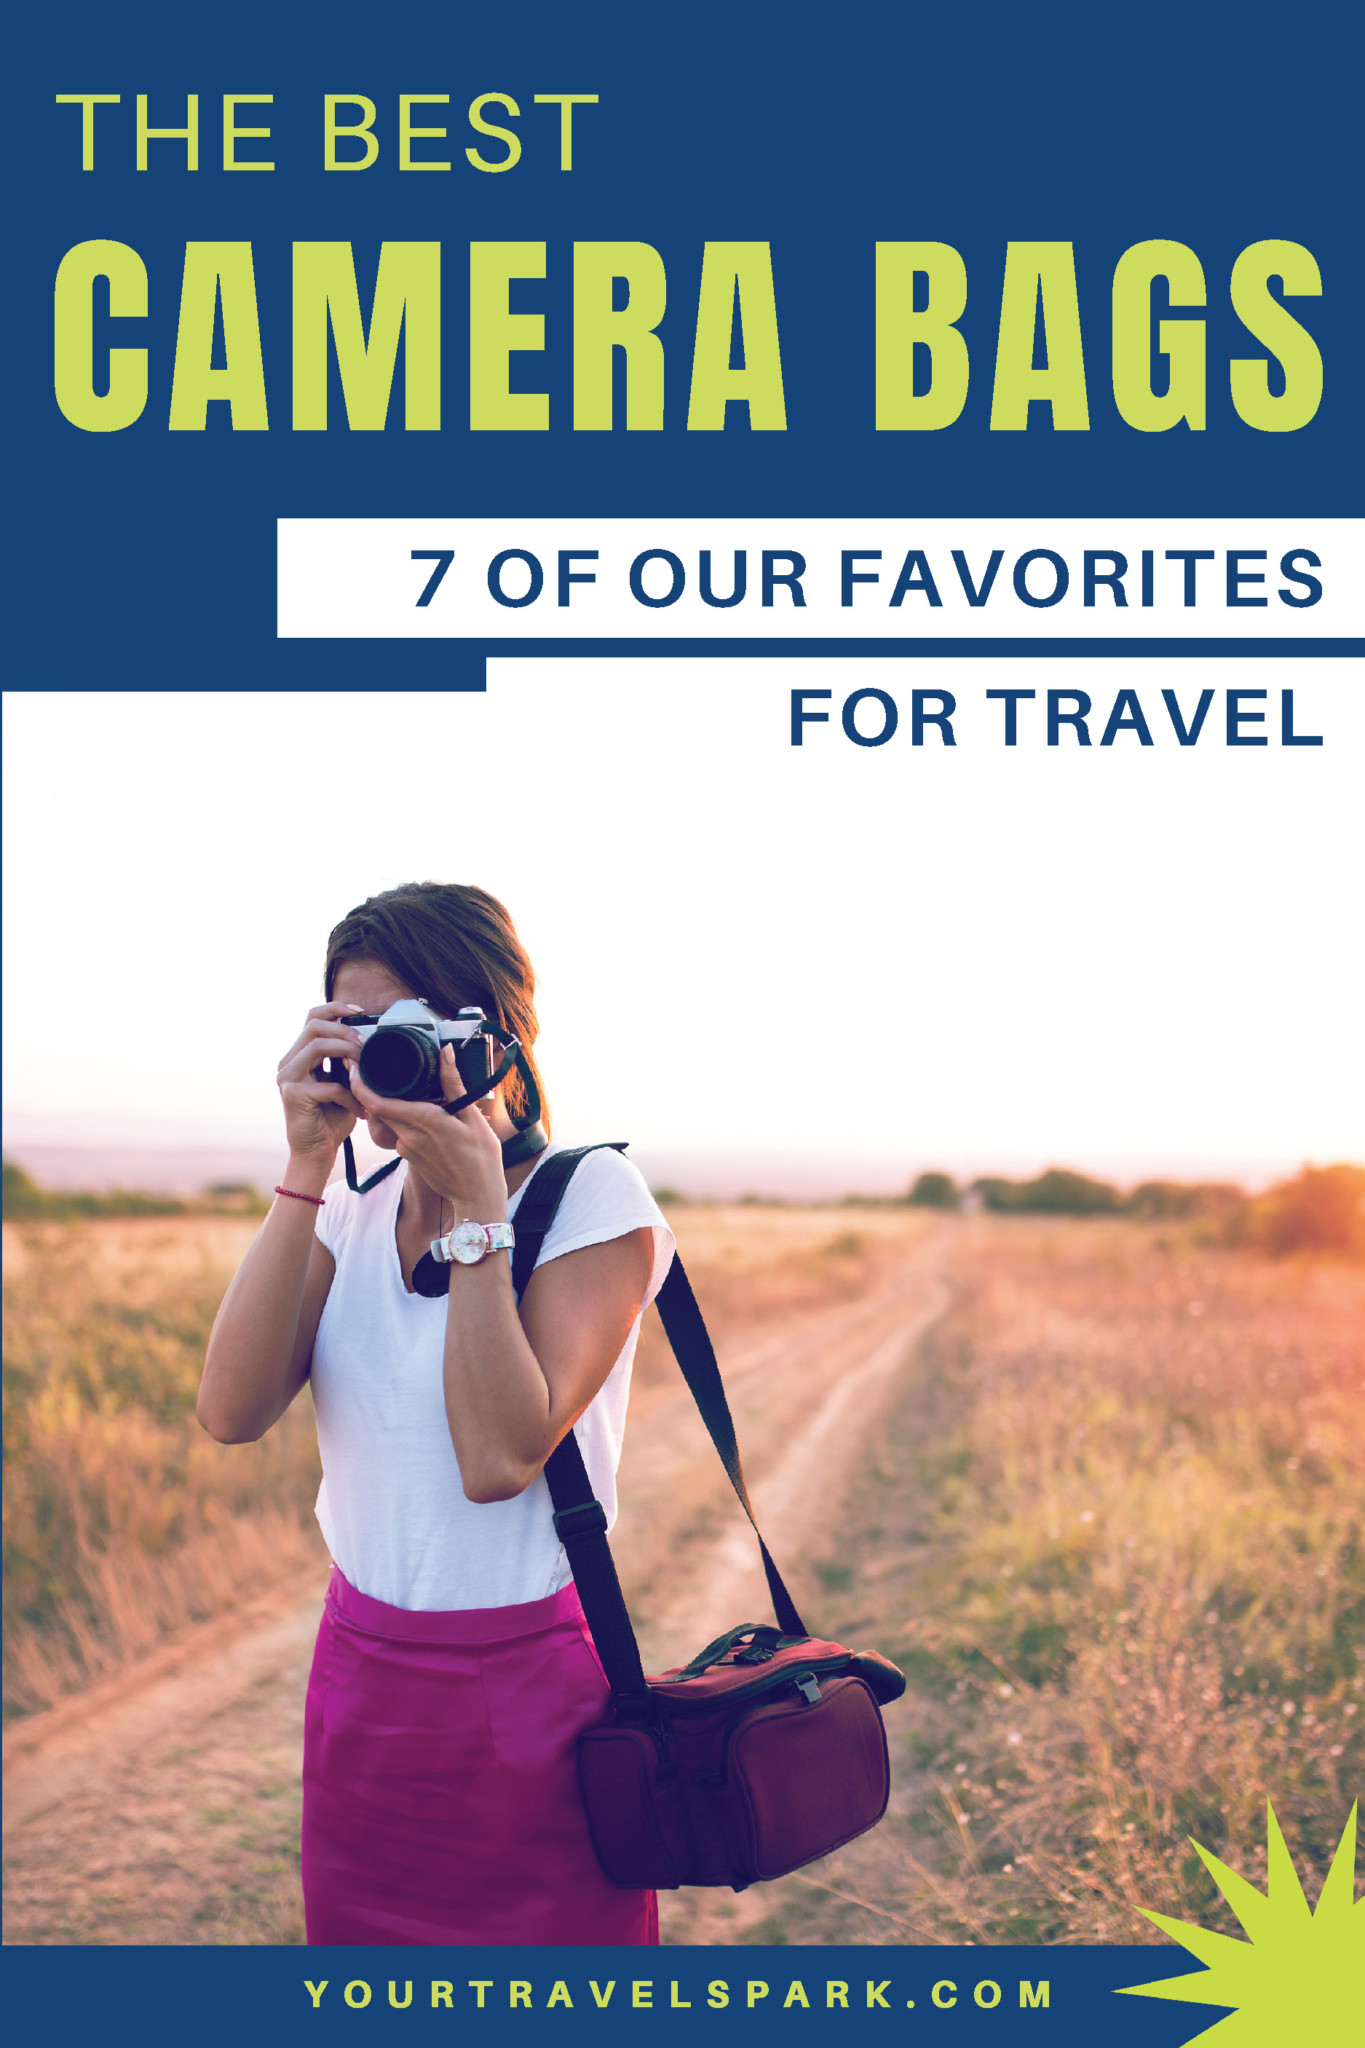 Traveling with a camera can either be a good or very taxing experience, and your camera bag will be an important determining factor of that. Here are our favorite camera bags for travel. #camerabags #camerabagsfortravel #travelcamerabags #camera #travelcamera #camerabag #travel